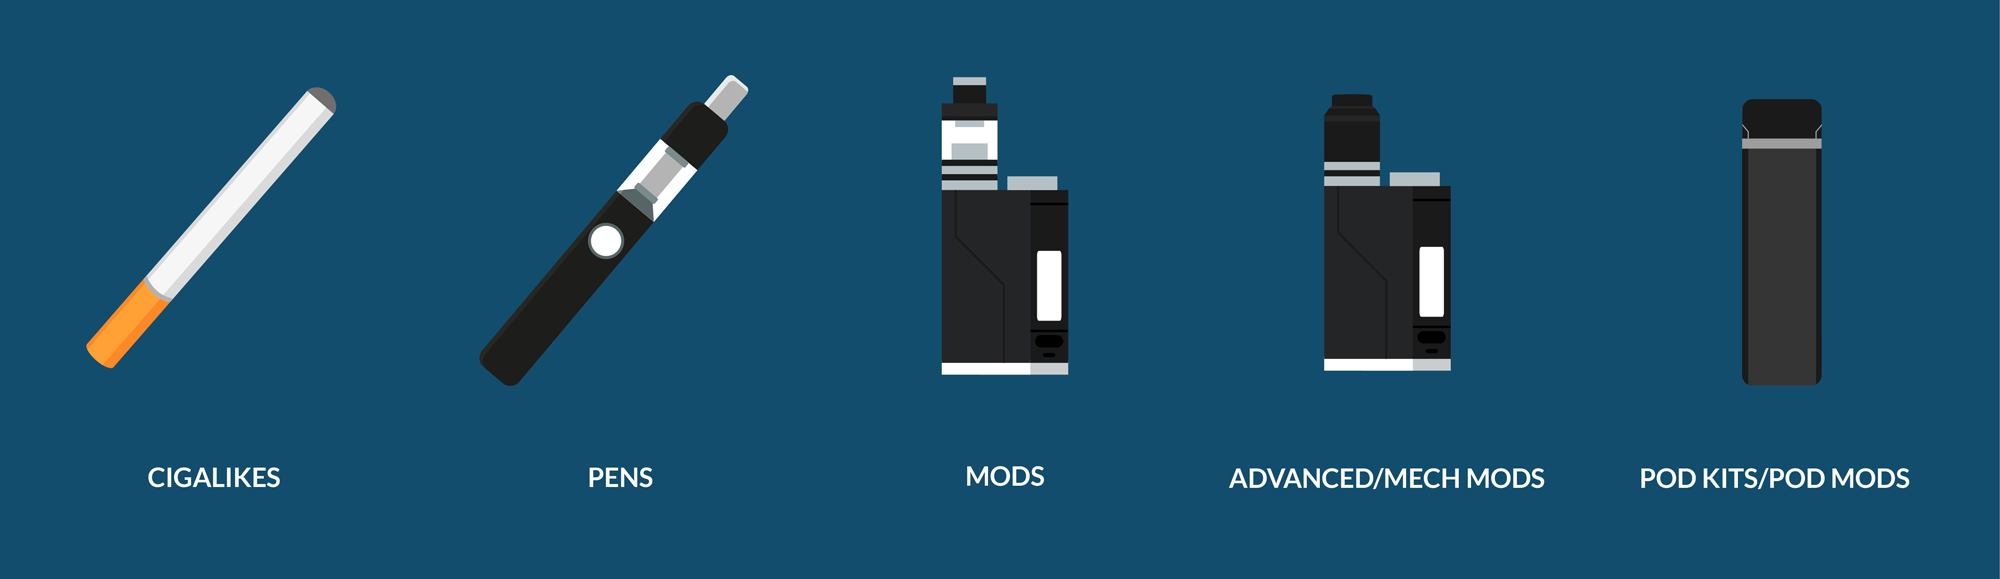 all types of vape devices